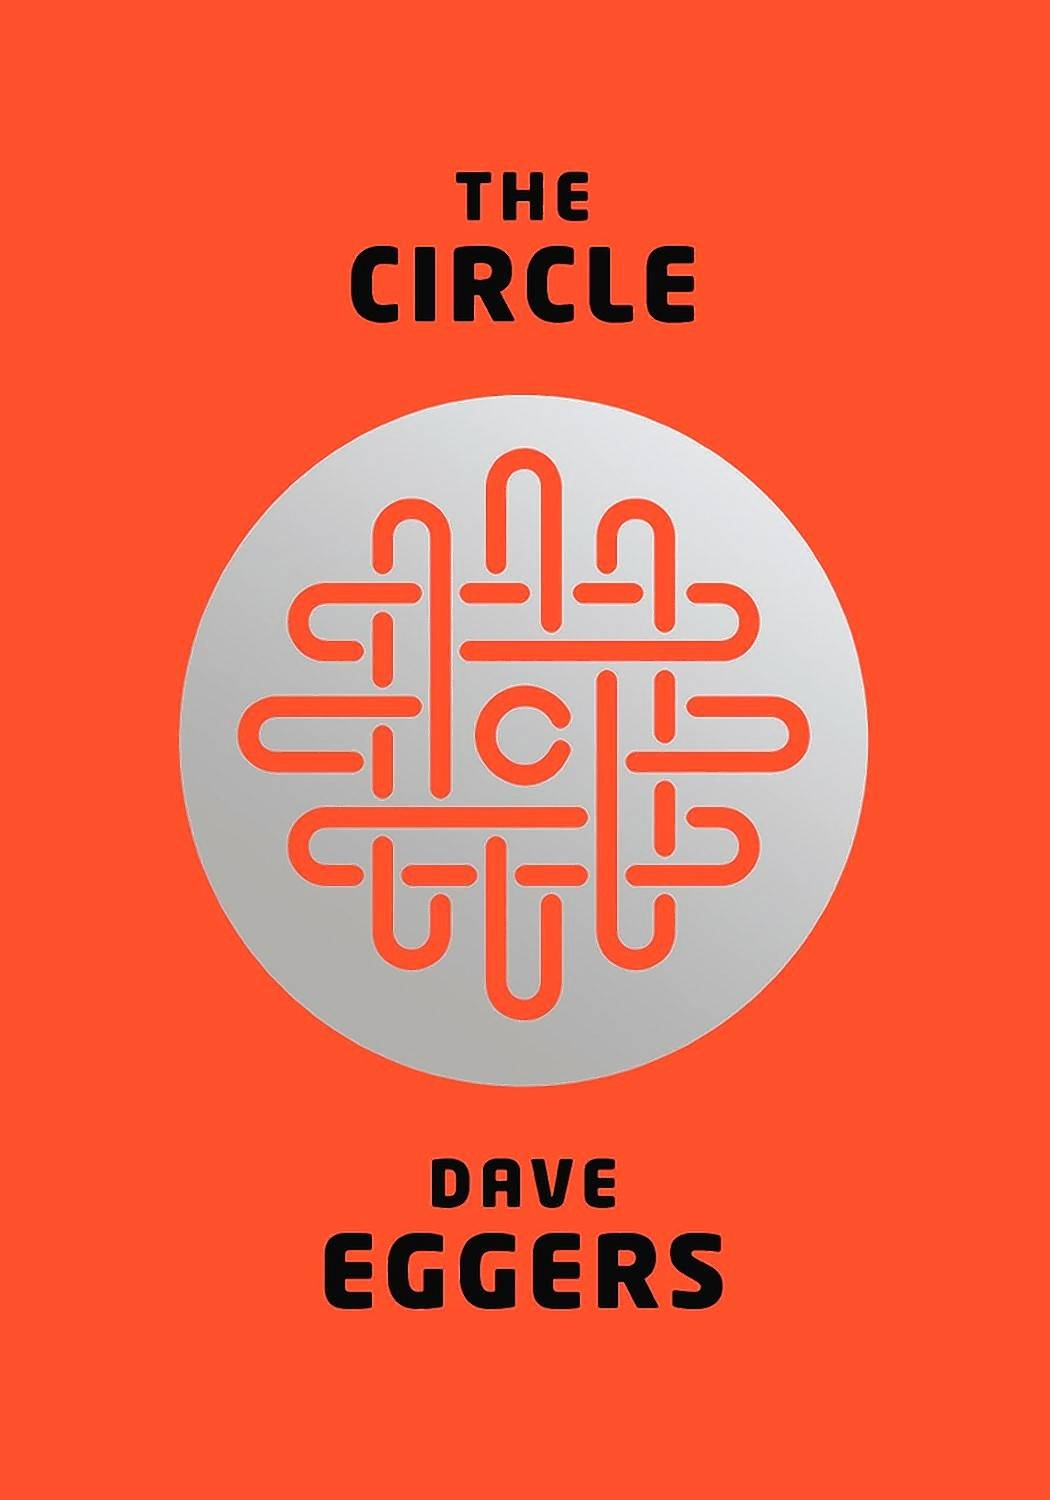 """The Circle"" by Dave Eggers is this year's One Book, One Village reading selection in Arlington Heights."